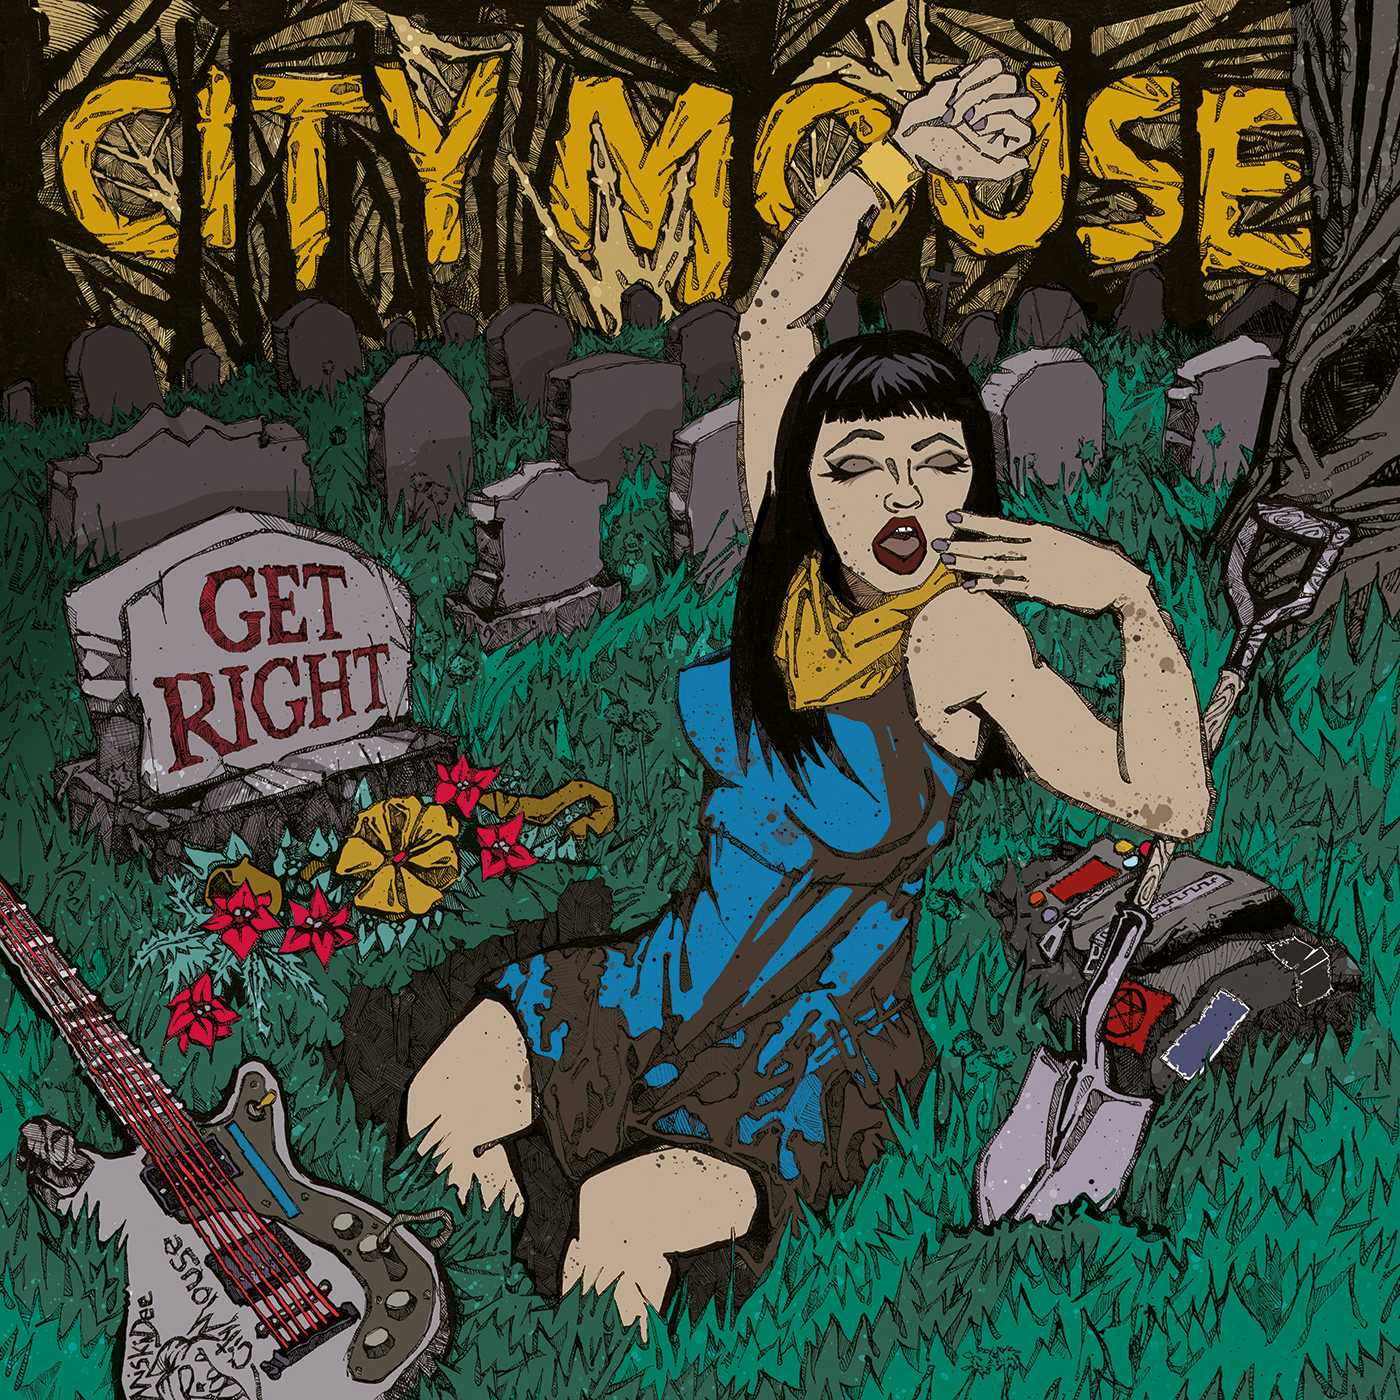 Get Right - City Mouse